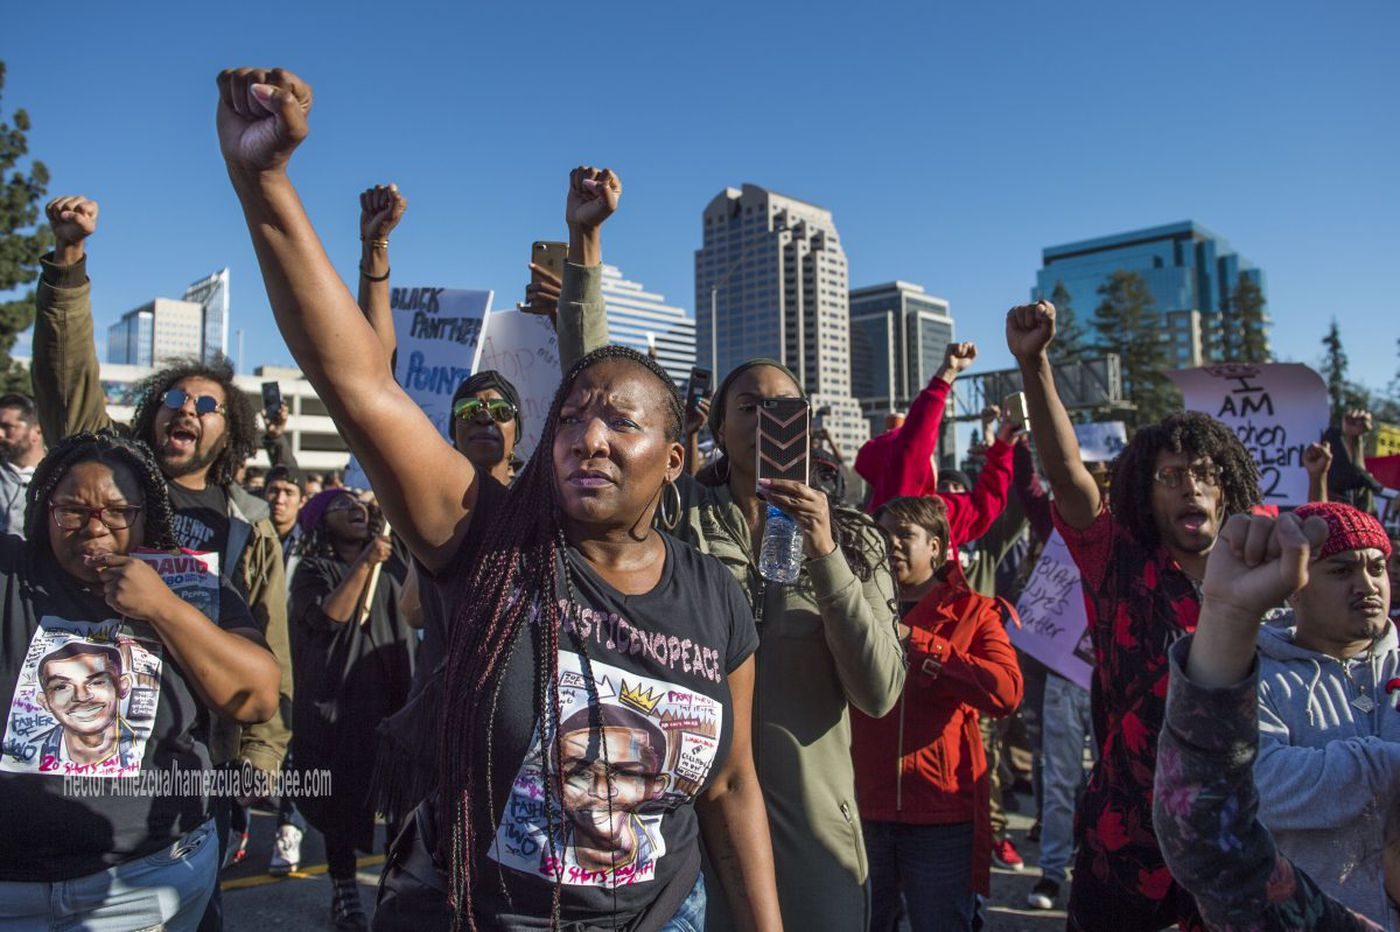 Black outrage is loud and palpable, but how constructively is it channeled these days? | Perspective